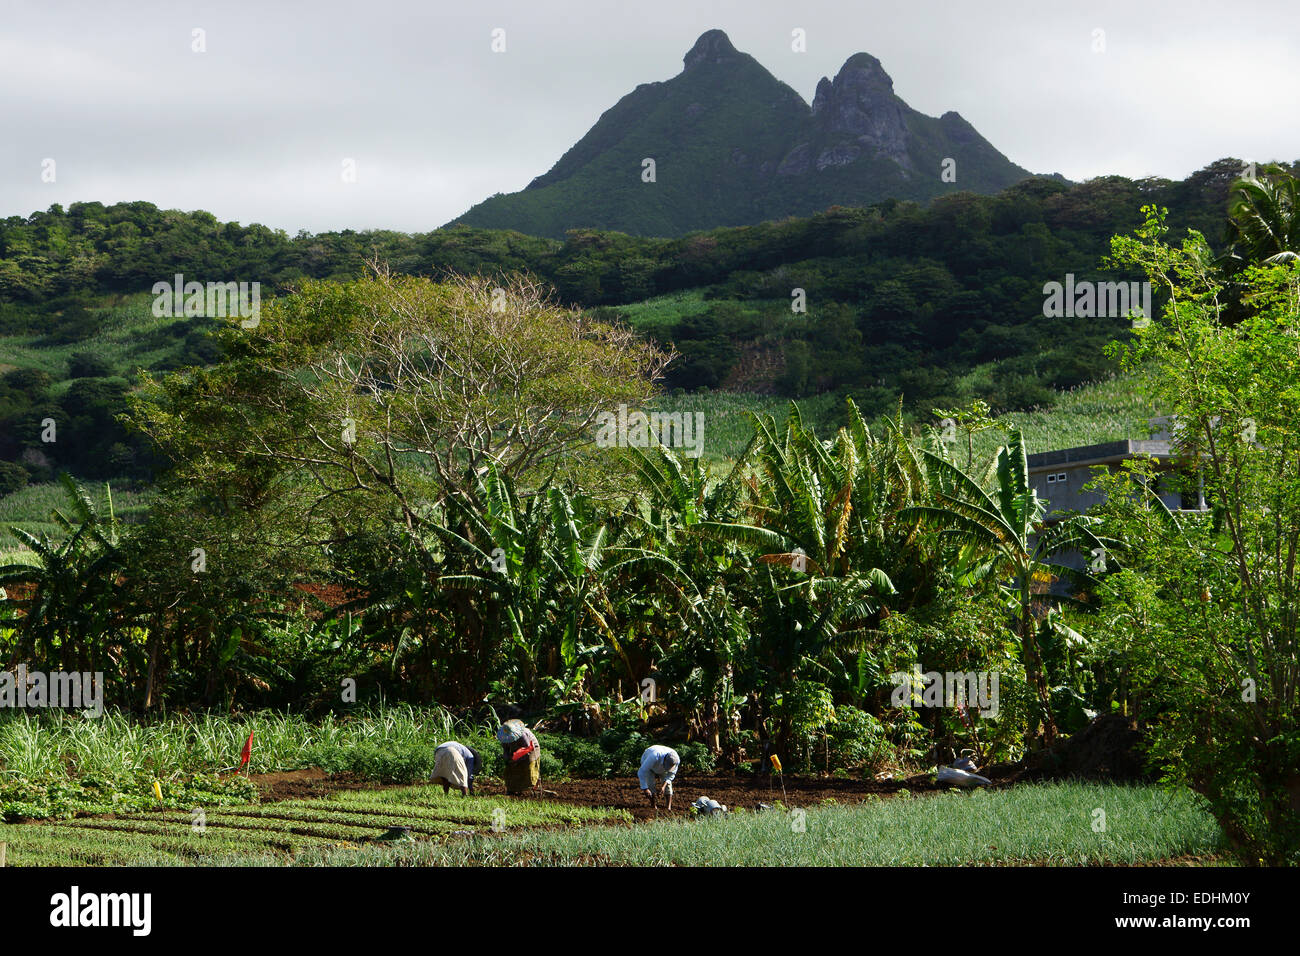 Women working in vegetable garden near Bambous Virieux, Island Mauritius - Stock Image